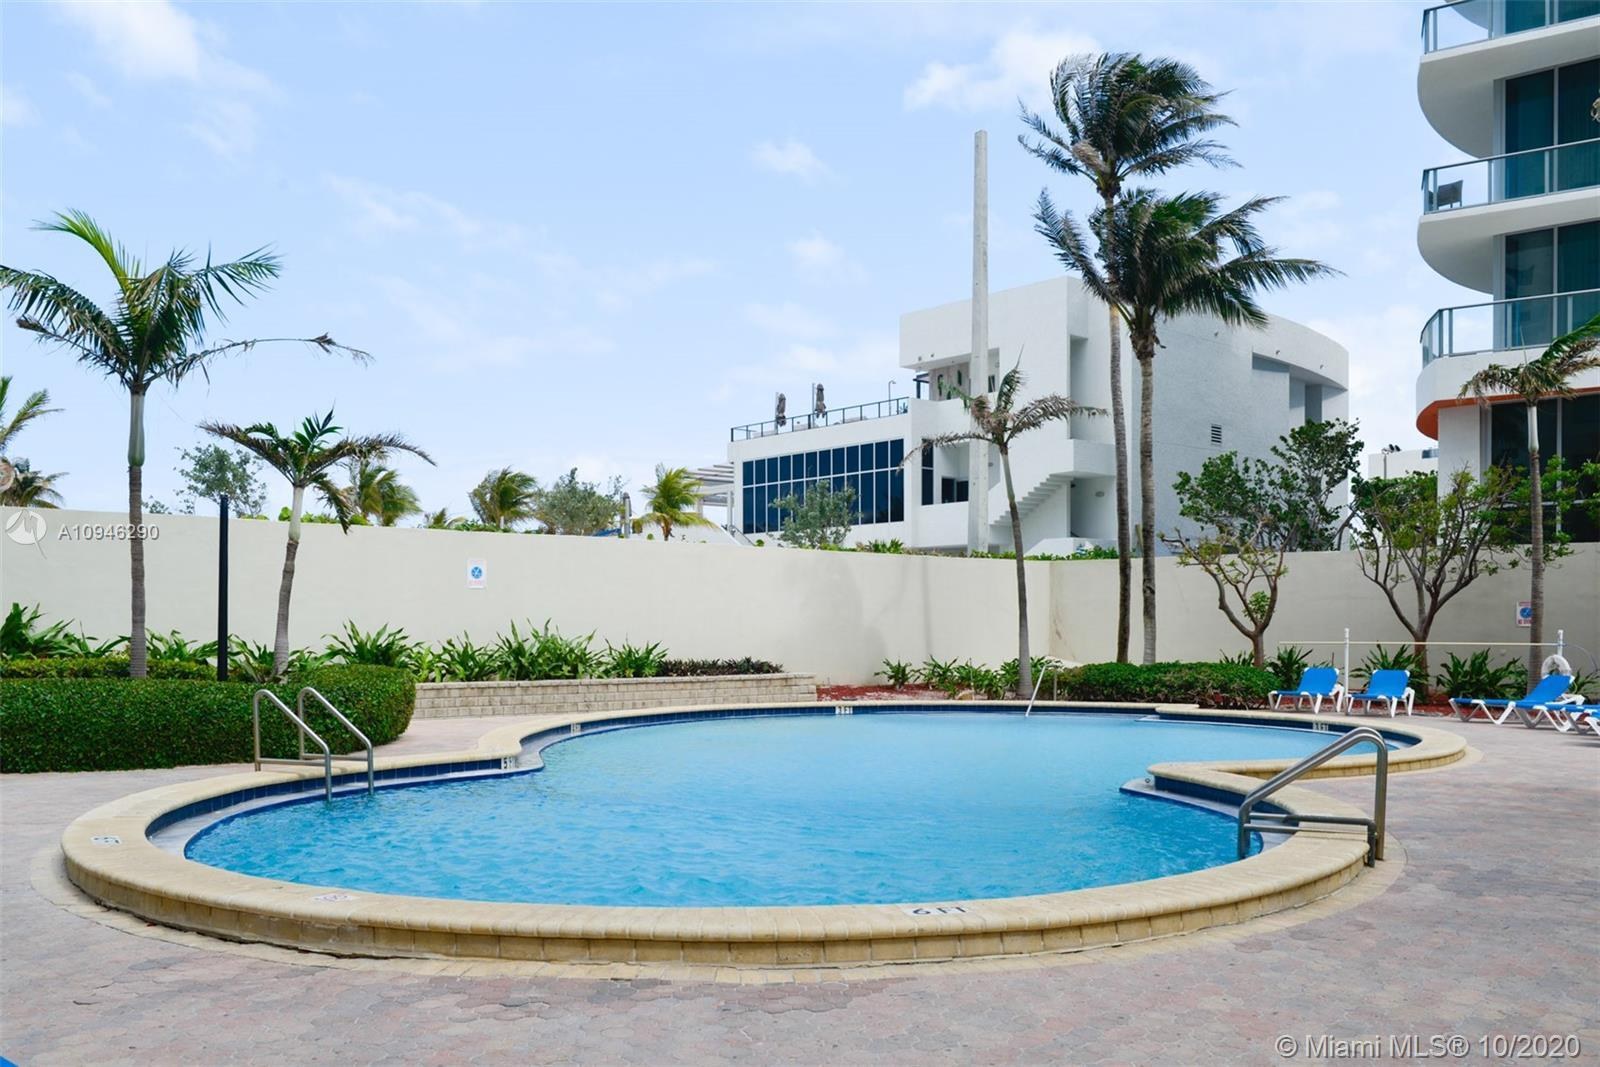 This Oceanfront, Direct Beach Access Fully Remodeled Spacious 2 Bedroom Condo With 2 Baths Has OCEAN